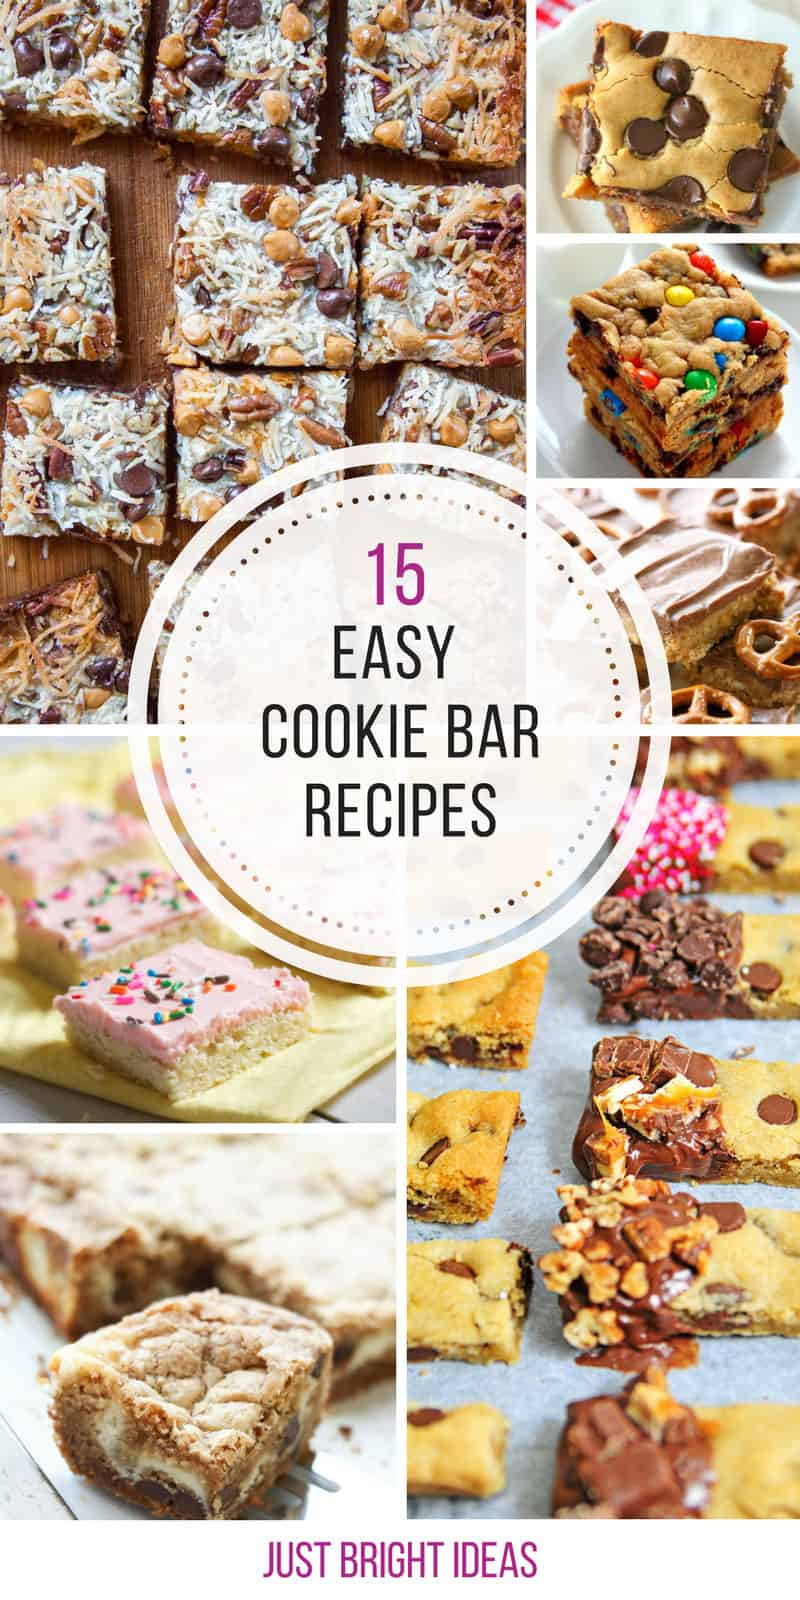 These easy cookie bar recipes are amazing! Thanks for sharing!